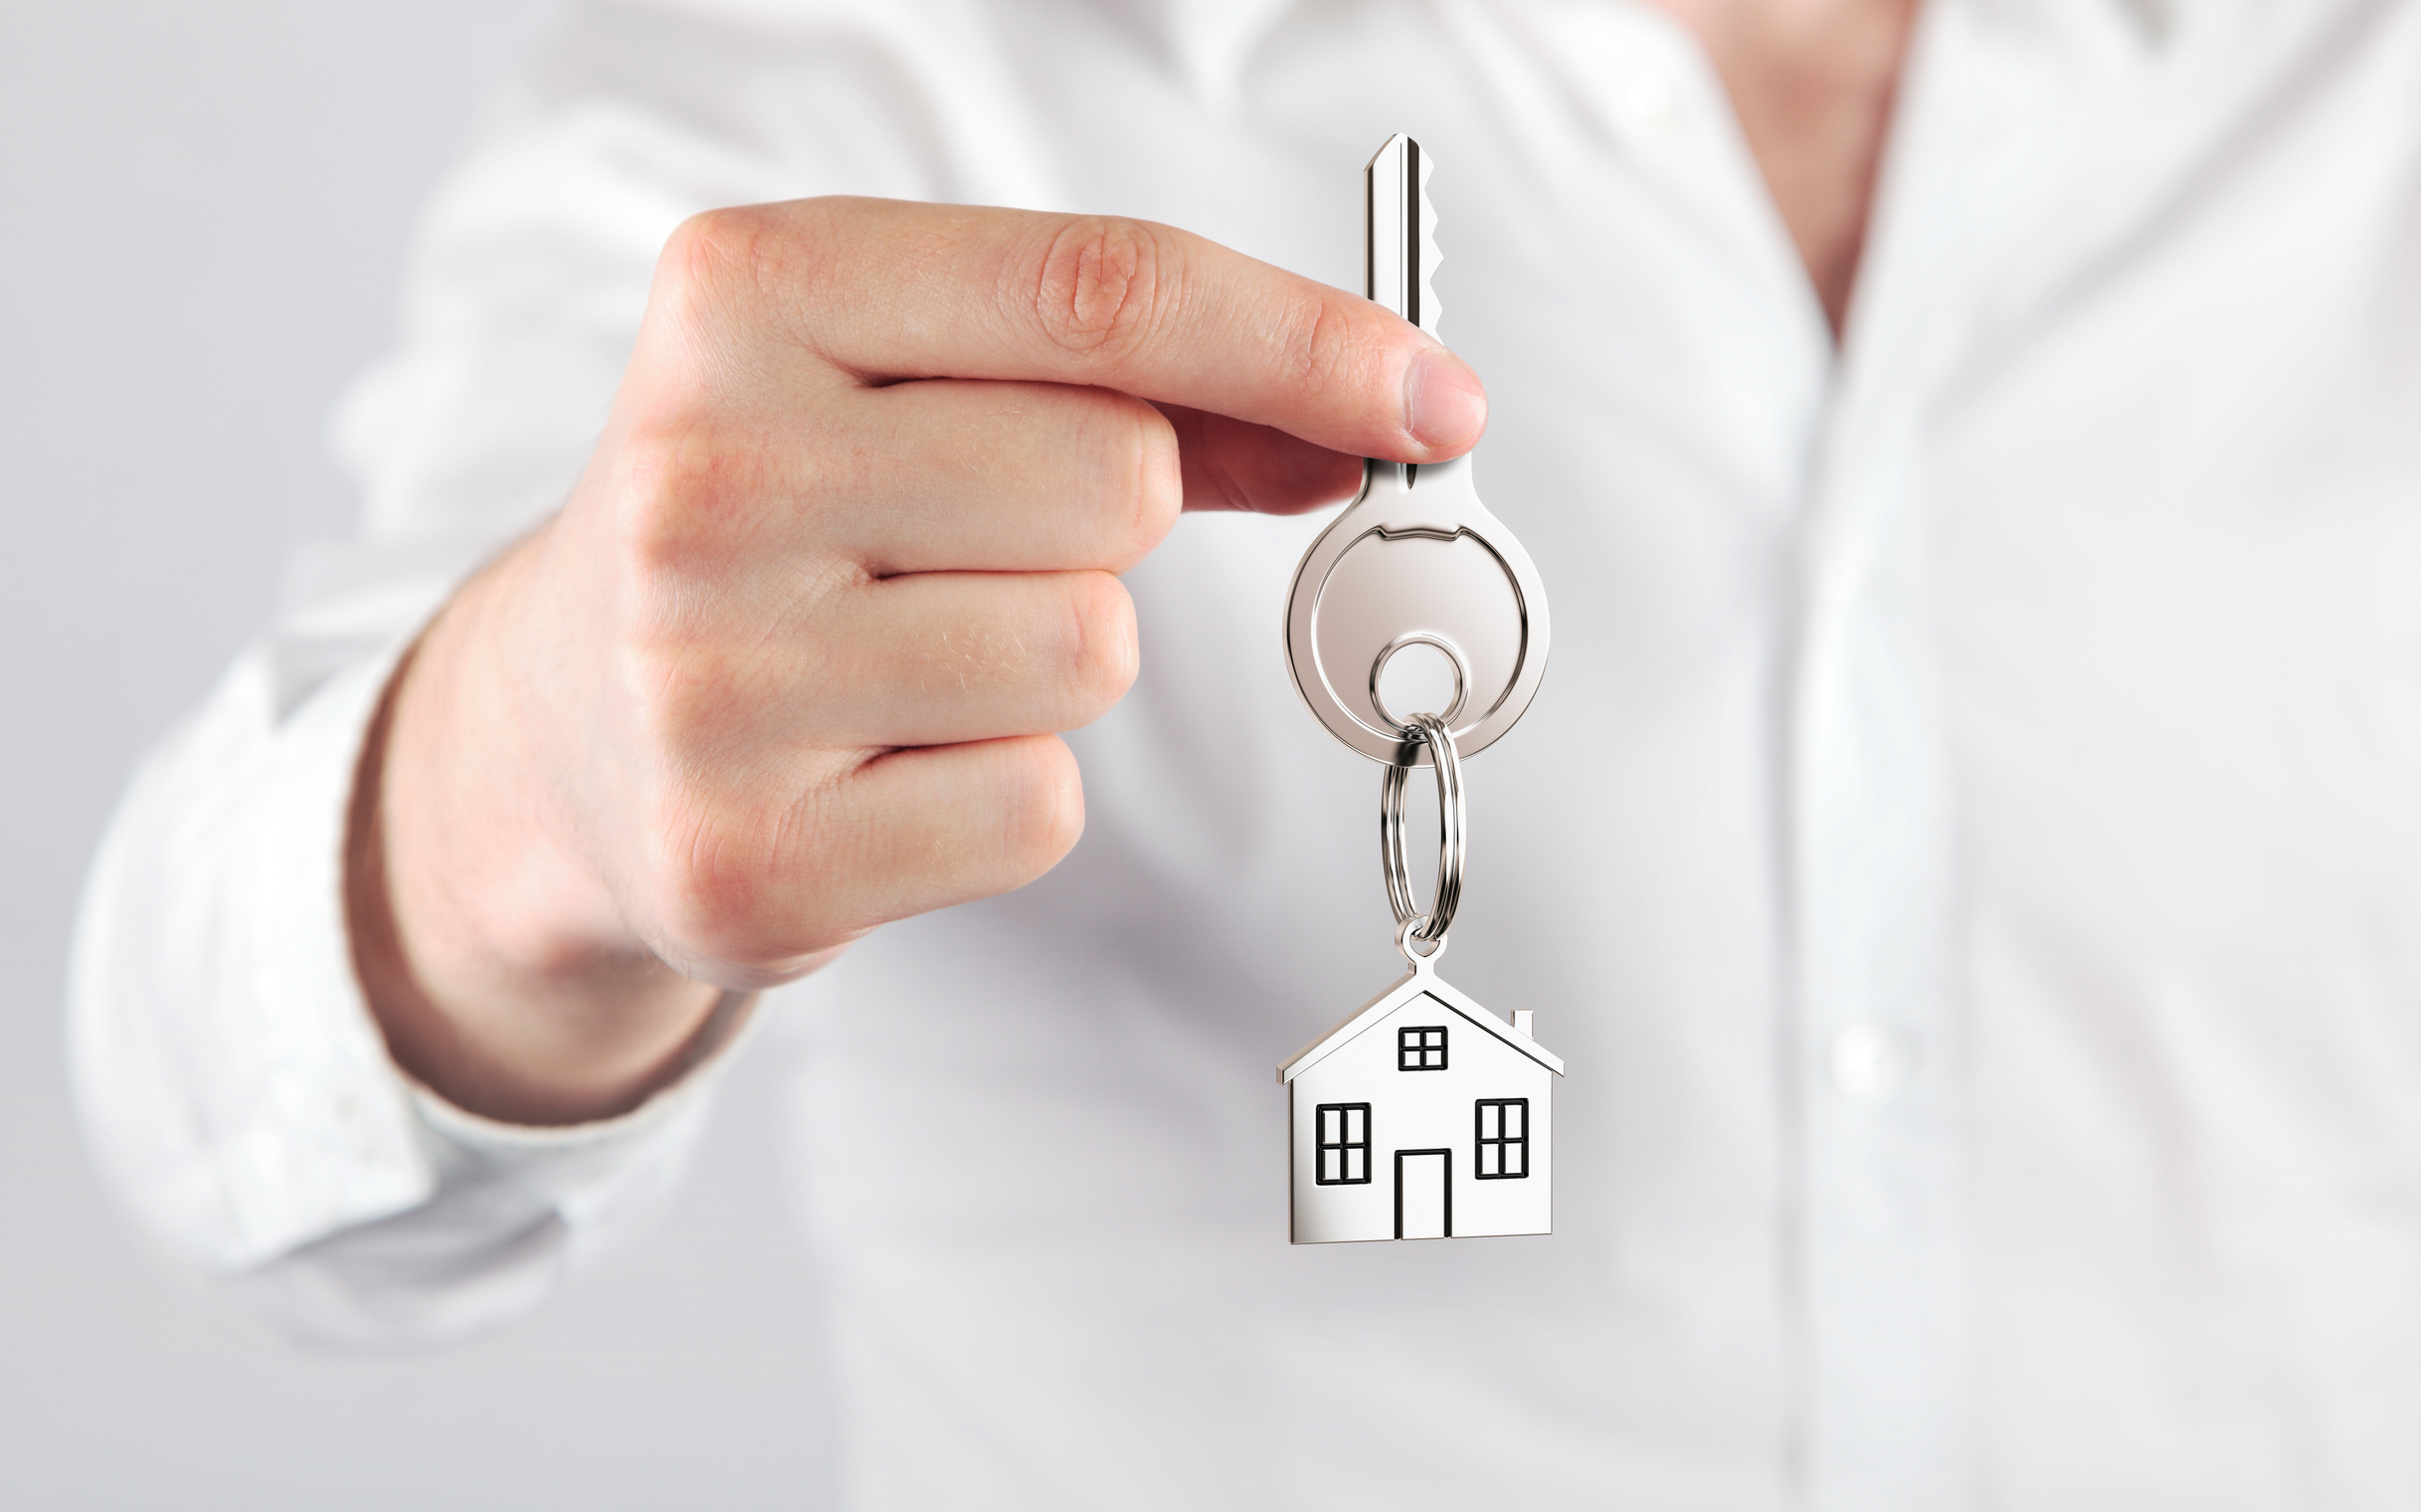 giving house key with a keychain house form